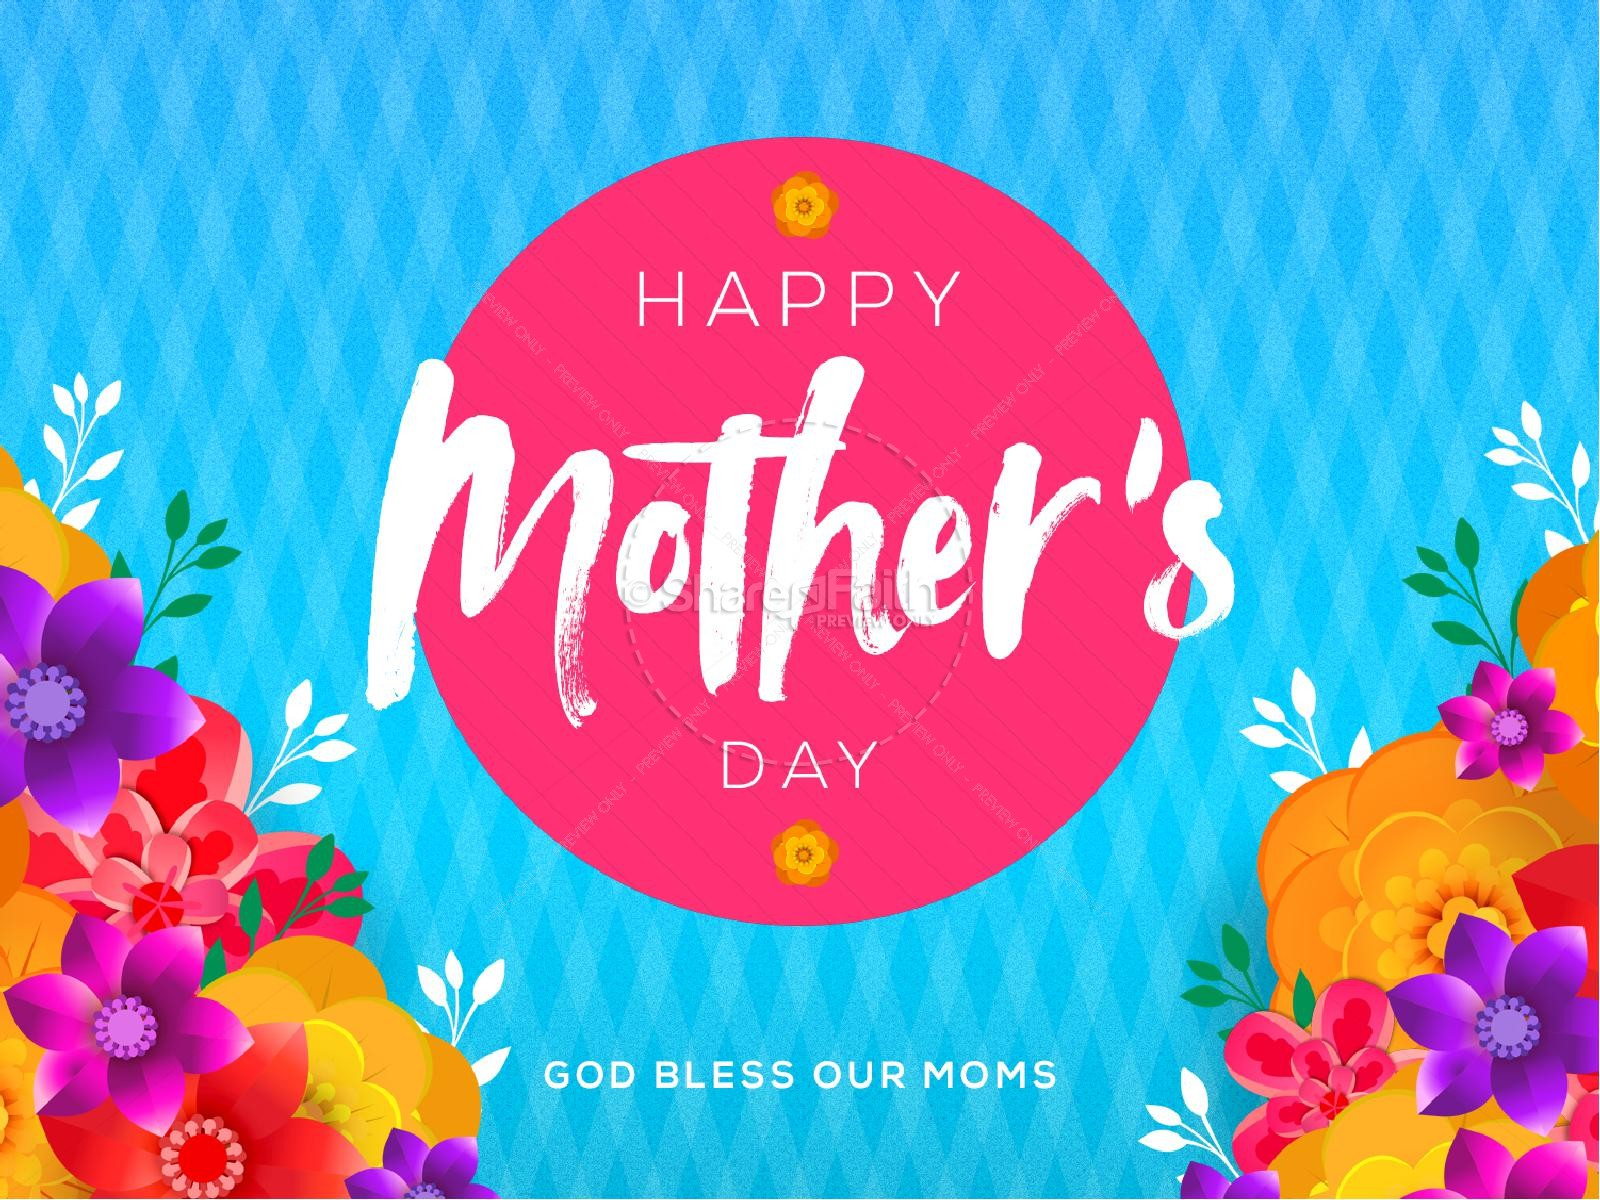 Happy Mother's Day Flowers Service Graphic